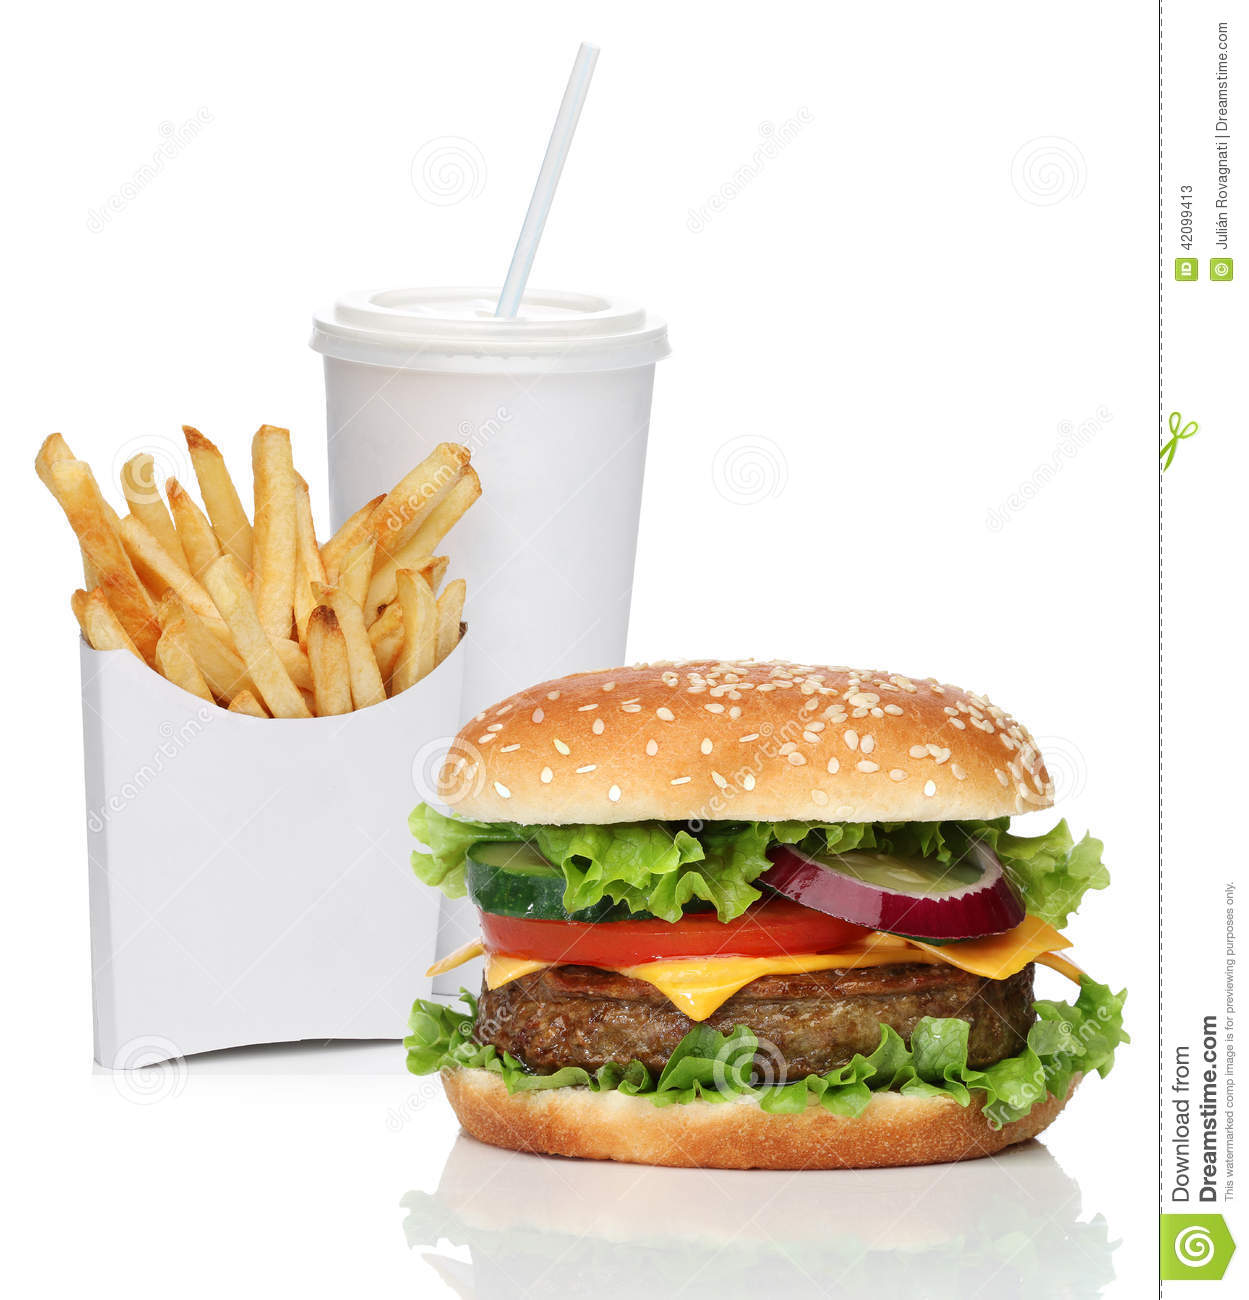 hamburger avec des pommes frites et une boisson de kola image stock image du fran ais gras. Black Bedroom Furniture Sets. Home Design Ideas